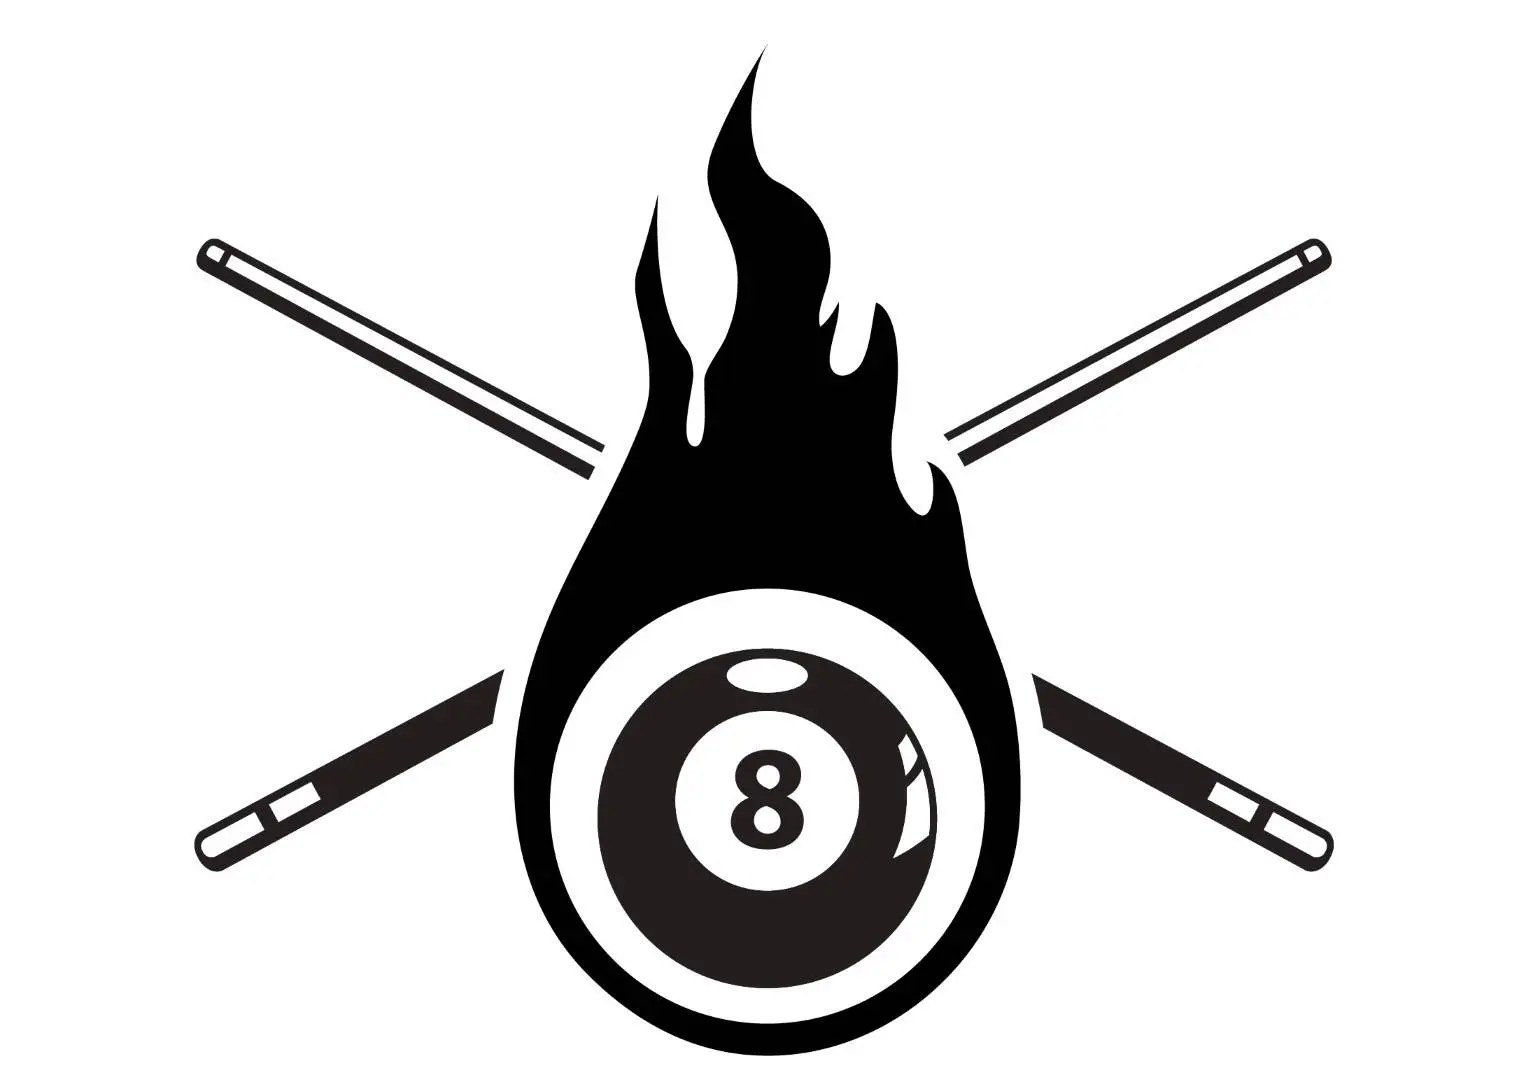 Billiards Pool Logo 1 Eight 8 Nine 9 Ball Stick Cue Sports